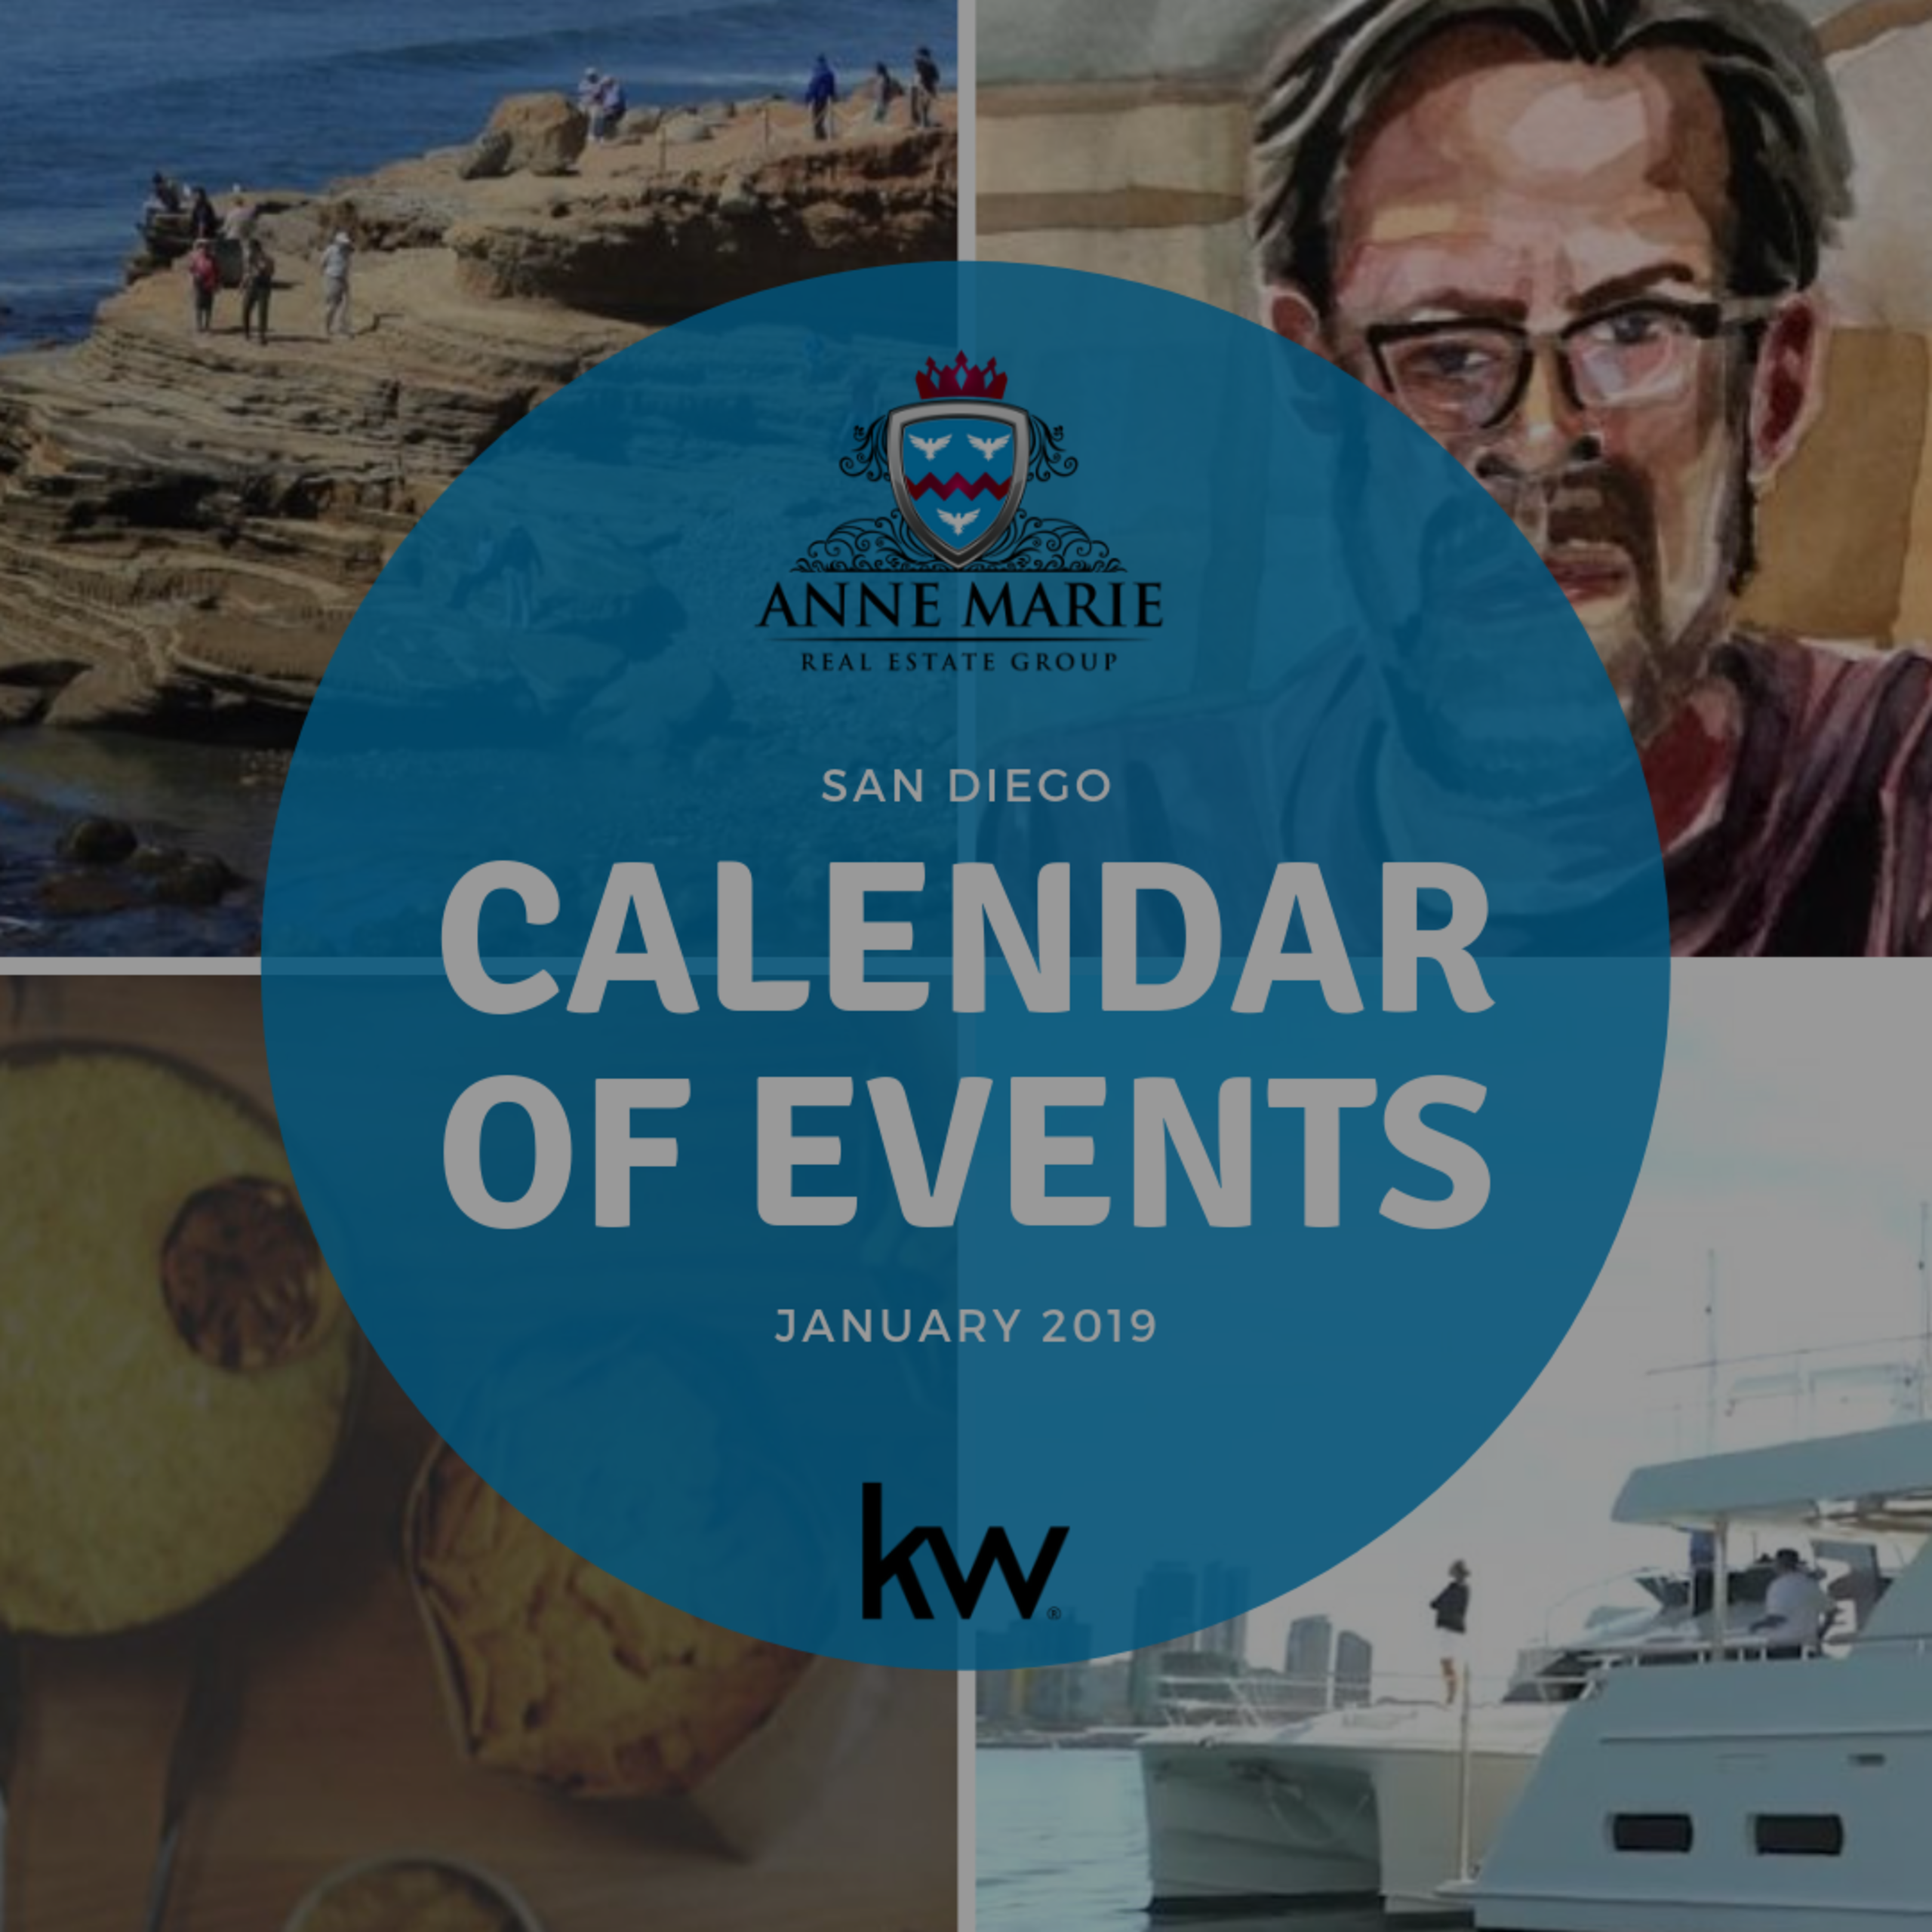 January 2019 Events in San Diego